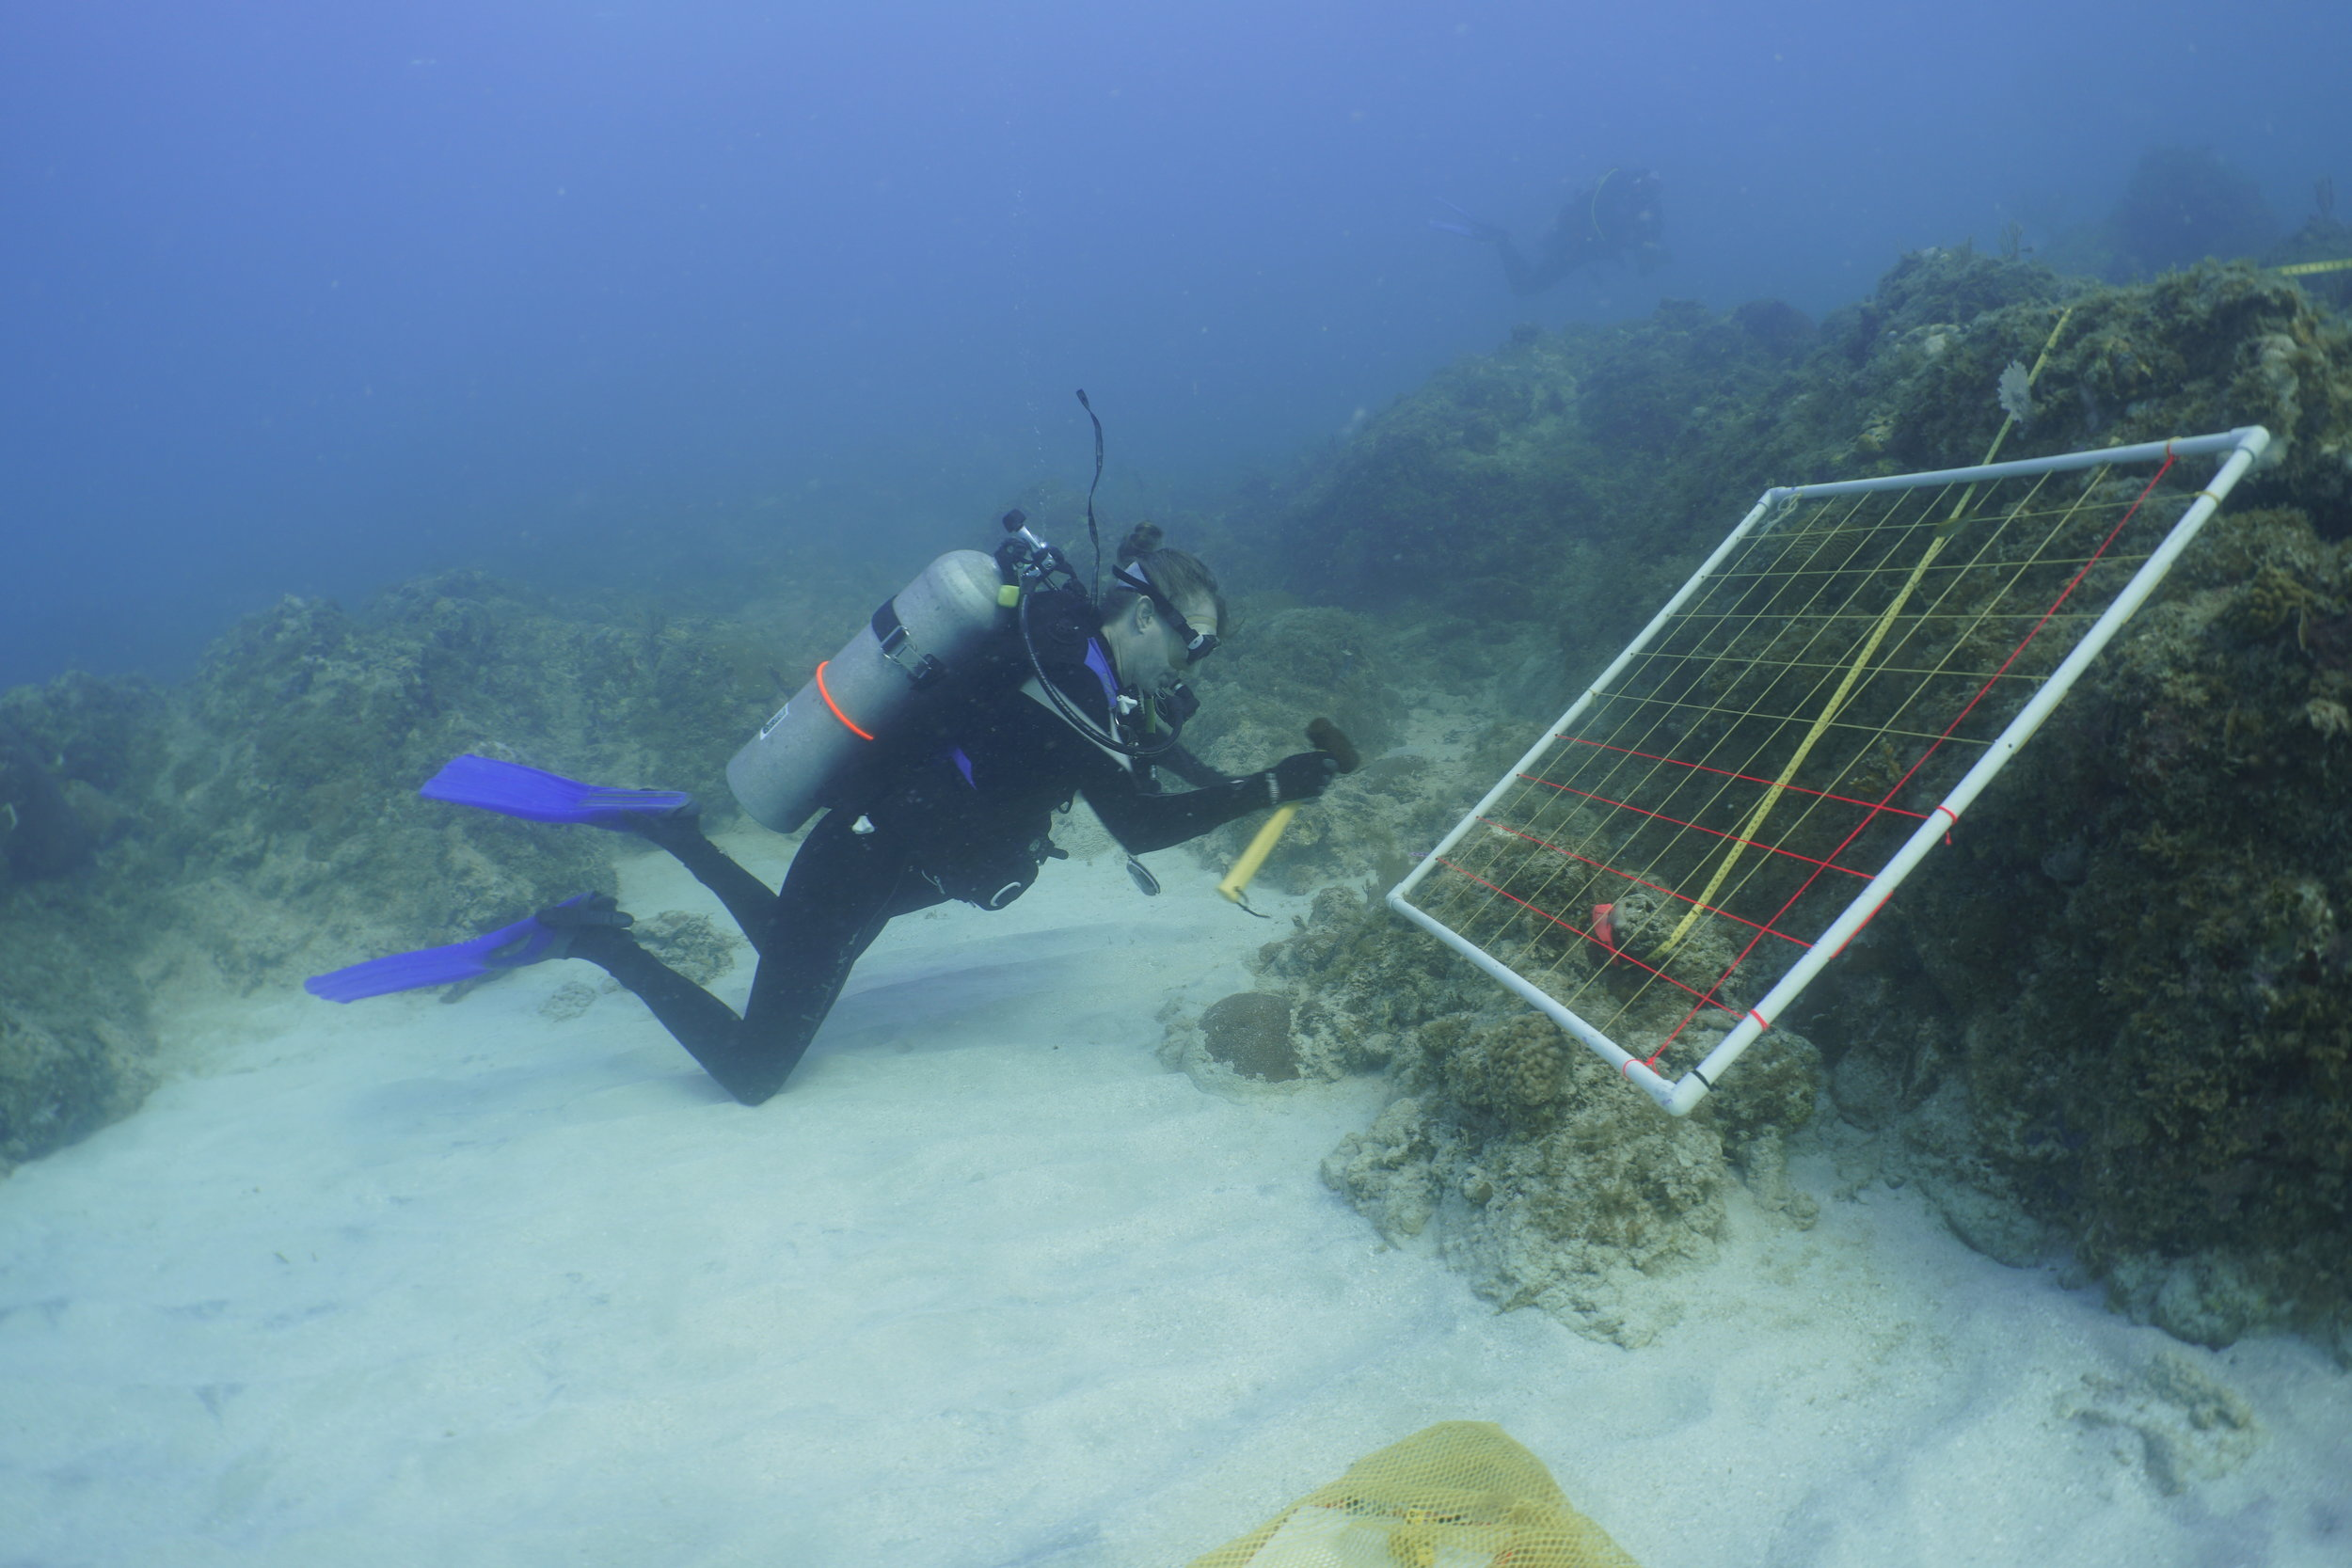 Dr. Julie Olson, a Professor of Biology at the University of Alabama and Co-Principal Investigator for the research cruise, takes data on the abundance of sponges and macroalgae on St. Thomas reefs.